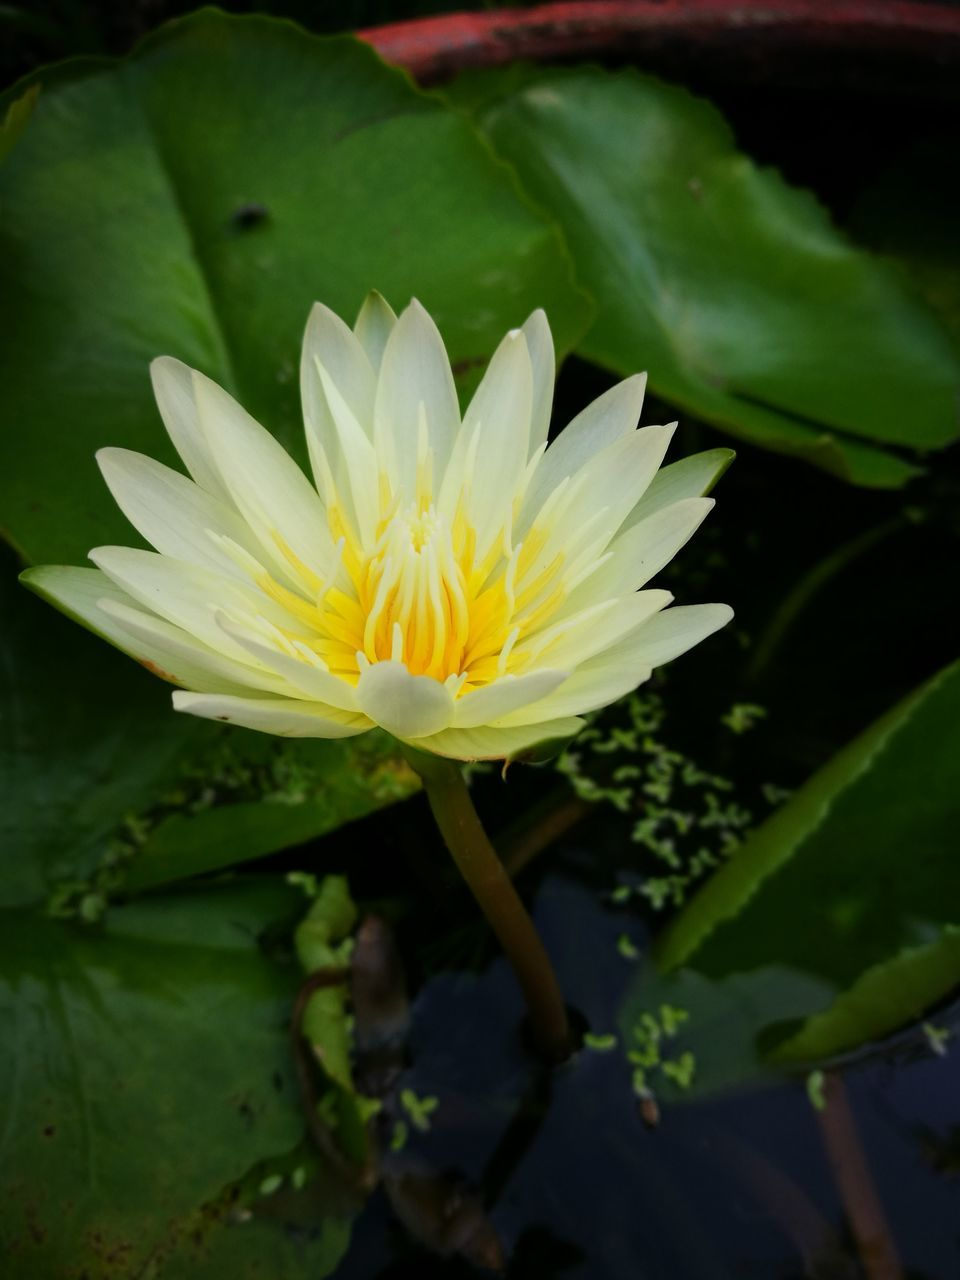 flower, petal, beauty in nature, nature, fragility, freshness, flower head, growth, leaf, green color, outdoors, no people, plant, yellow, day, close-up, water lily, blooming, lotus water lily